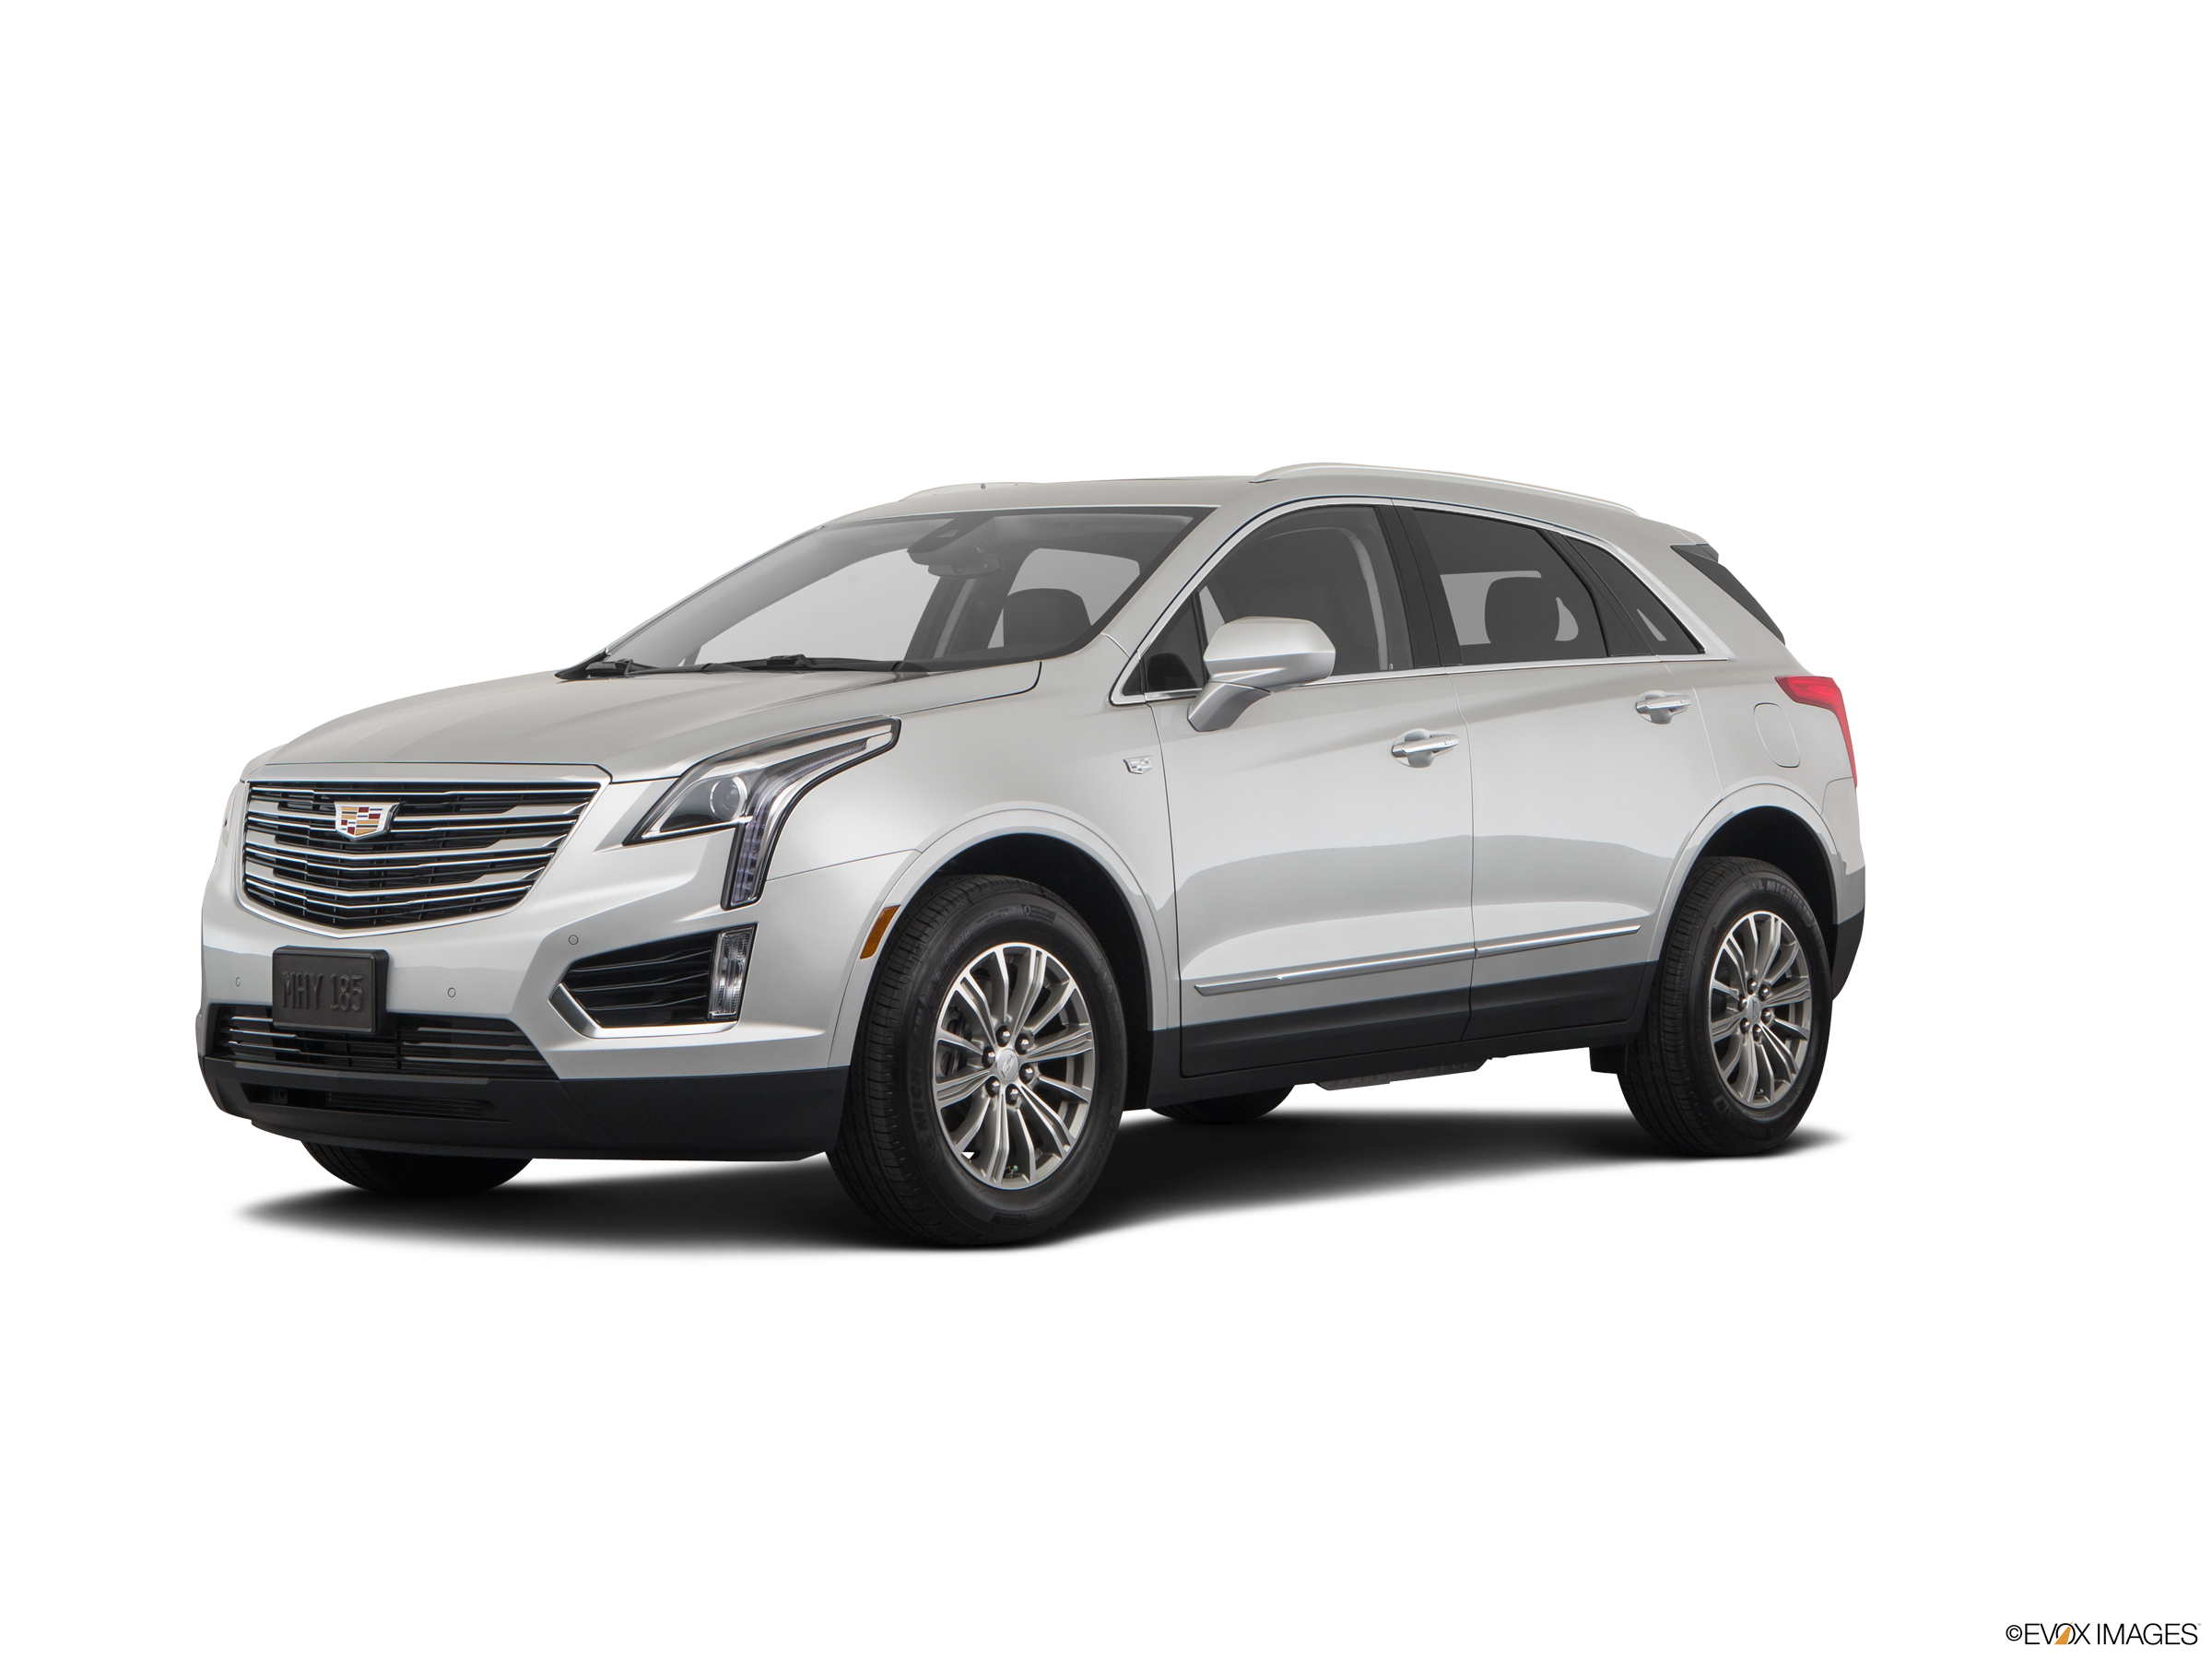 2020 Cadillac Xt5 Prices Reviews Pictures Kelley Blue Book